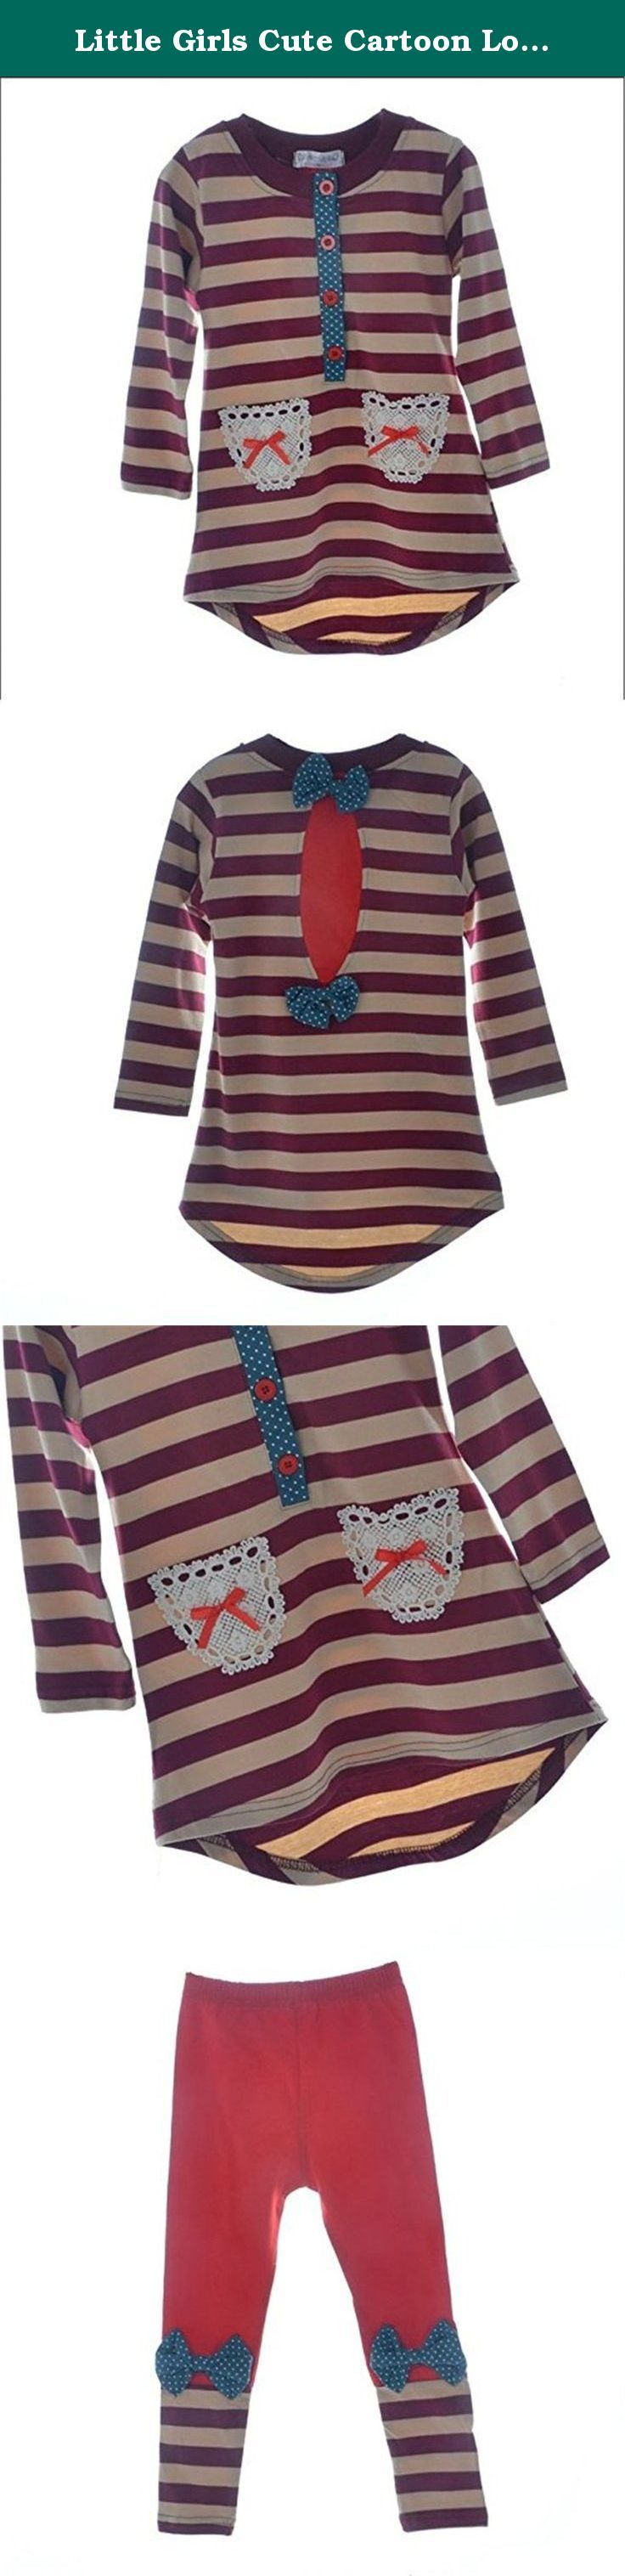 Little Girls Cute Cartoon Long Sleeve Sets 2-7 Striped Top Leggings XXL. Descriptions: The size in our listing is Asian size and it is different from US size, so please check the following size details before you place an order.The fittest size is the best. Size details for cat clothes set: Tag 100 ( recommend to 3-4 year):chest 24 inch,shoulder 11 inch,sleeve 14 inch,top length 19 inch,legging length 23 inch; Tag 110 ( recommend to 4-5 year):chest 26 inch,shoulder 12 inch,sleeve 16.5...